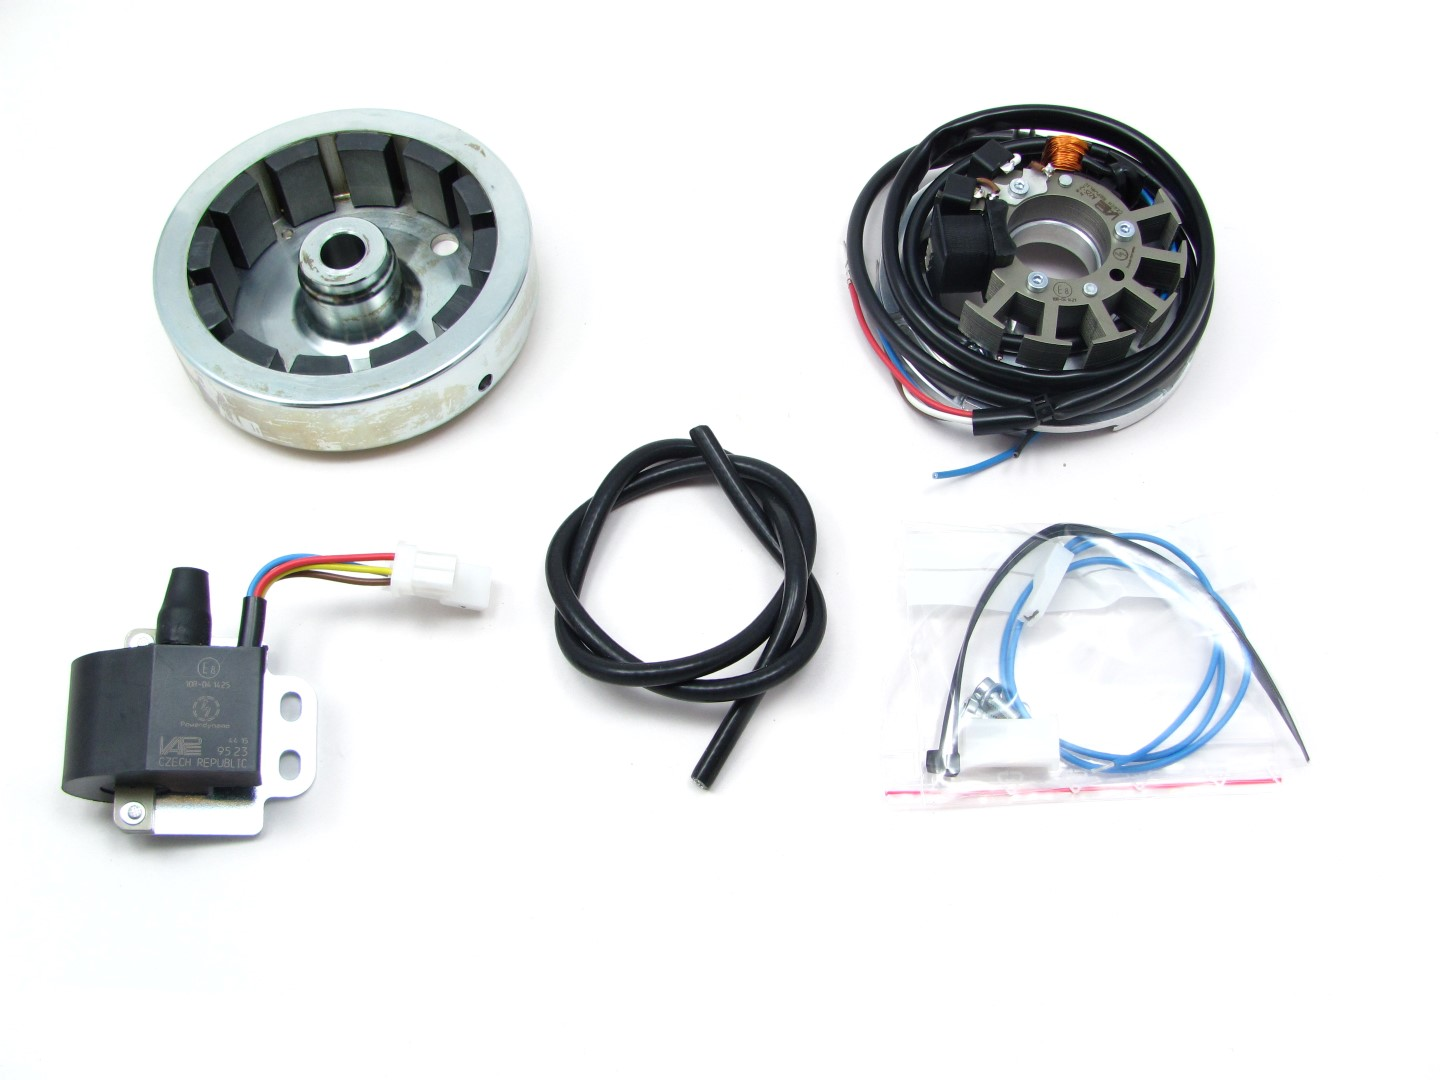 Powerdynamo, system for Ardie MF125 and S125 (with stock Bosch magneto)